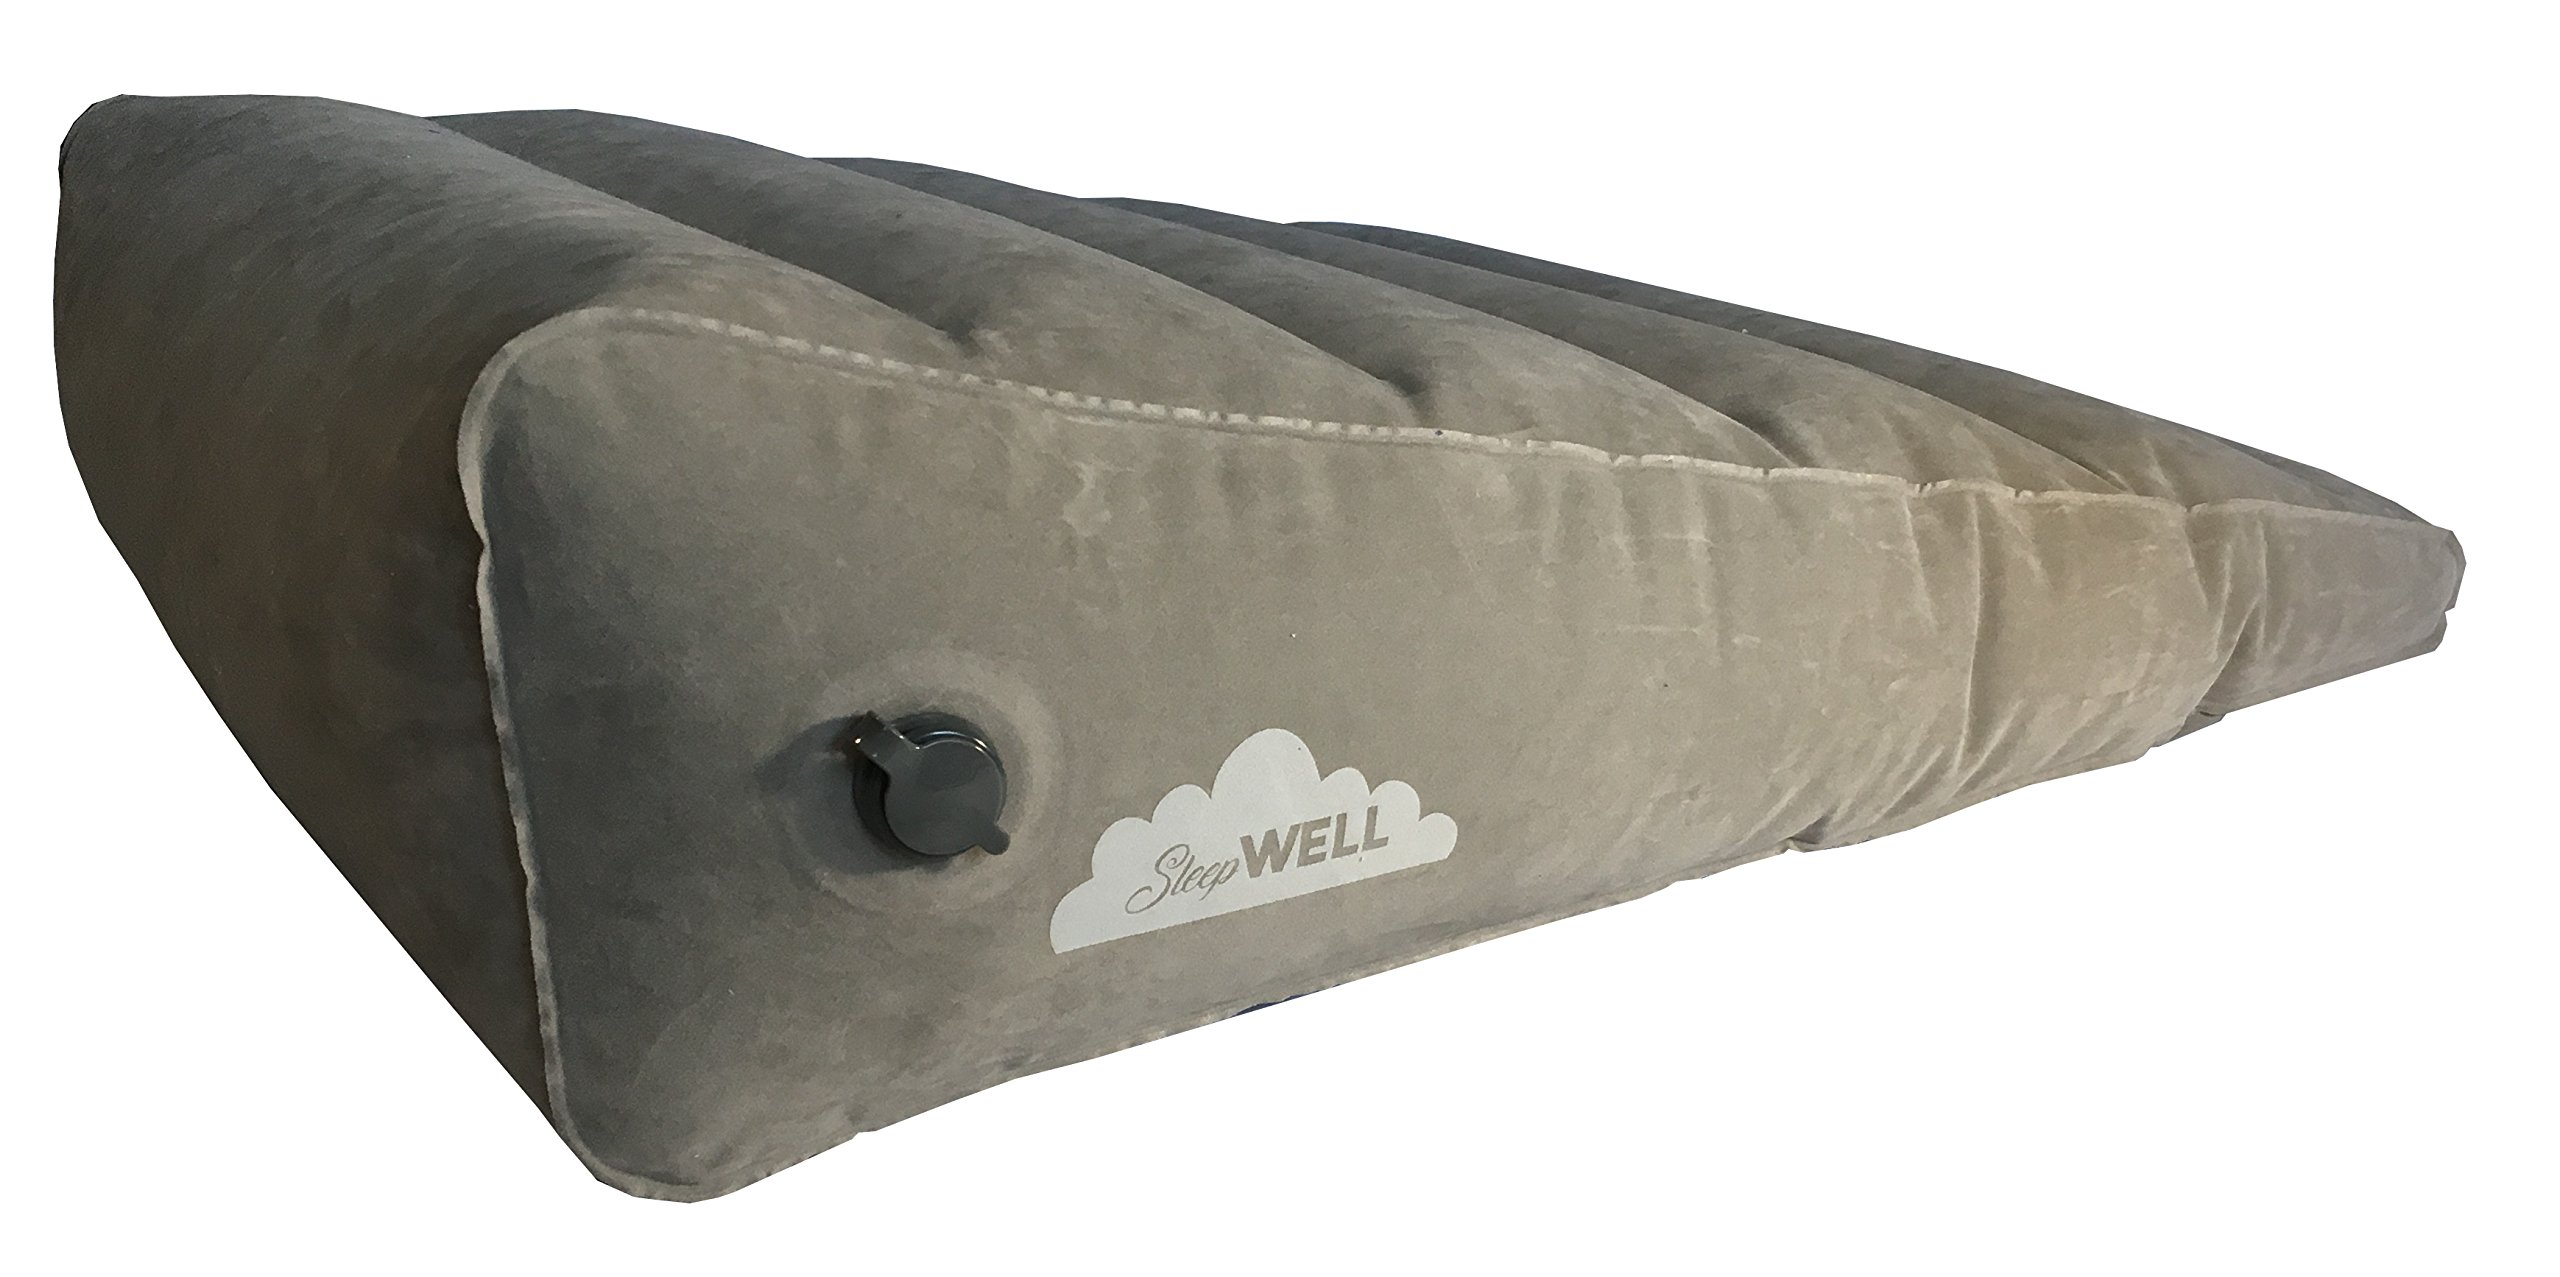 Sleepwell Inflatable Portable Bed Wedge with Quick Inflate/Deflate Valve and Soft Surface by Sleepwell